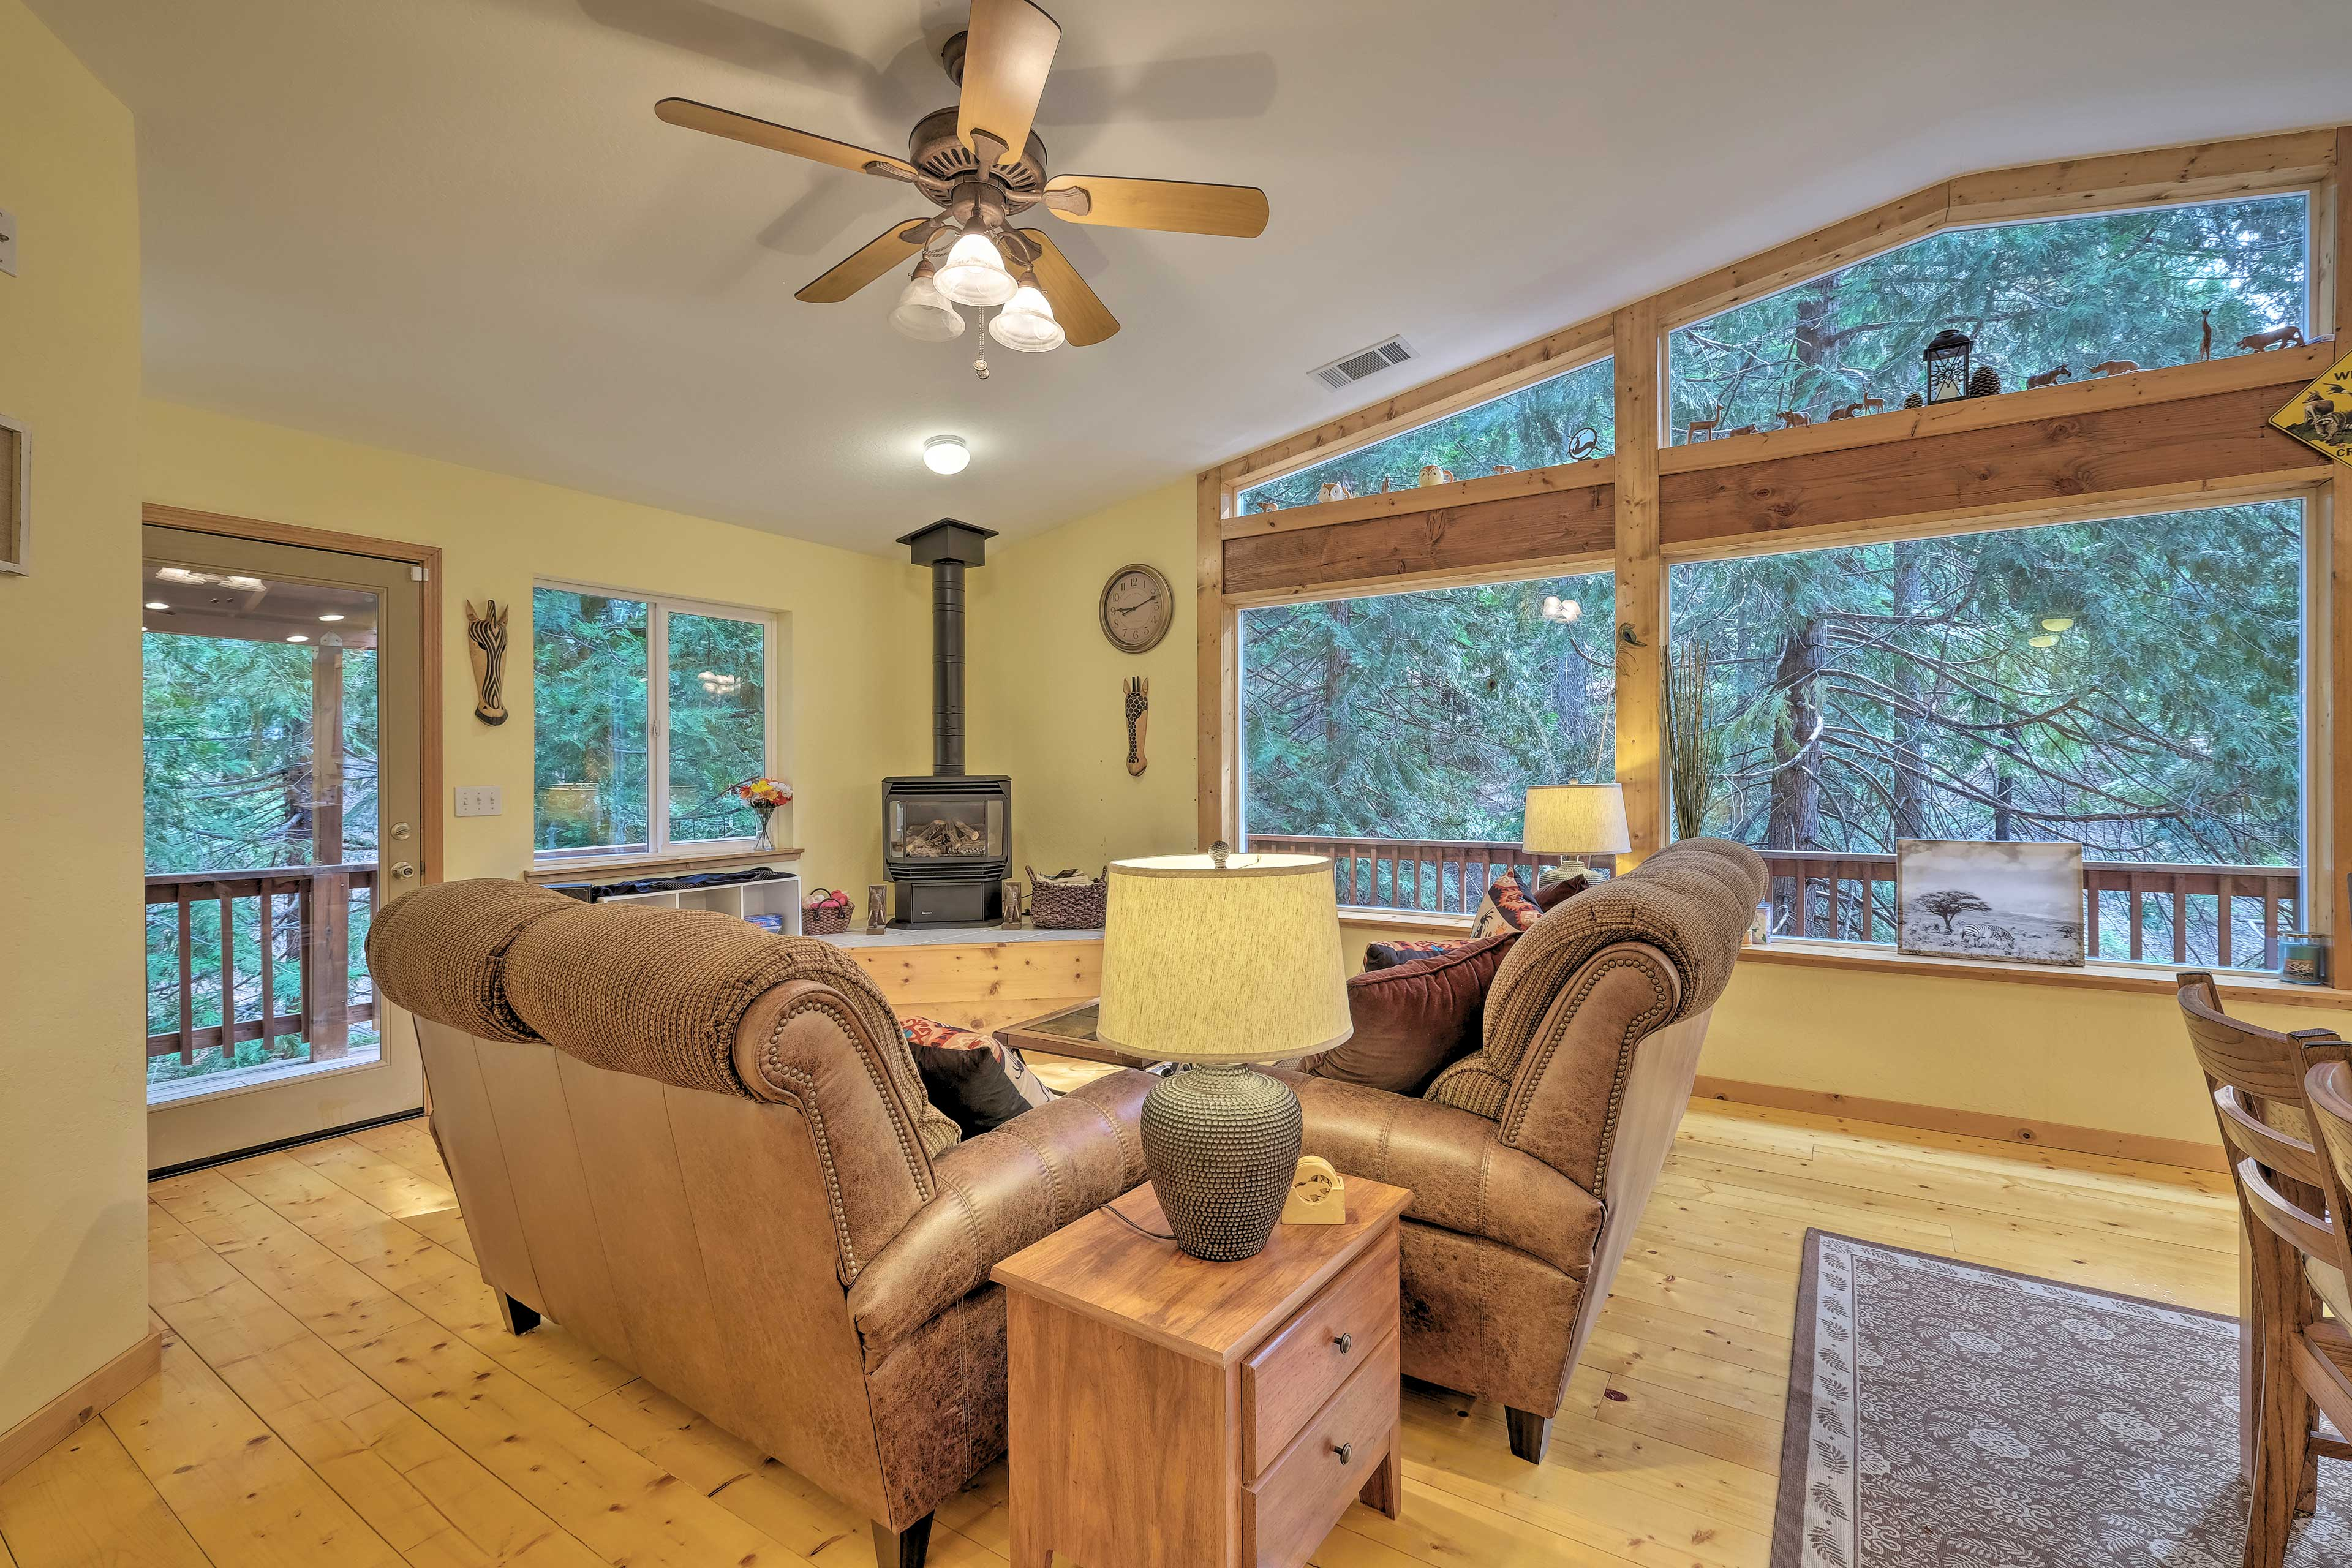 Wide windows frame wooded views.